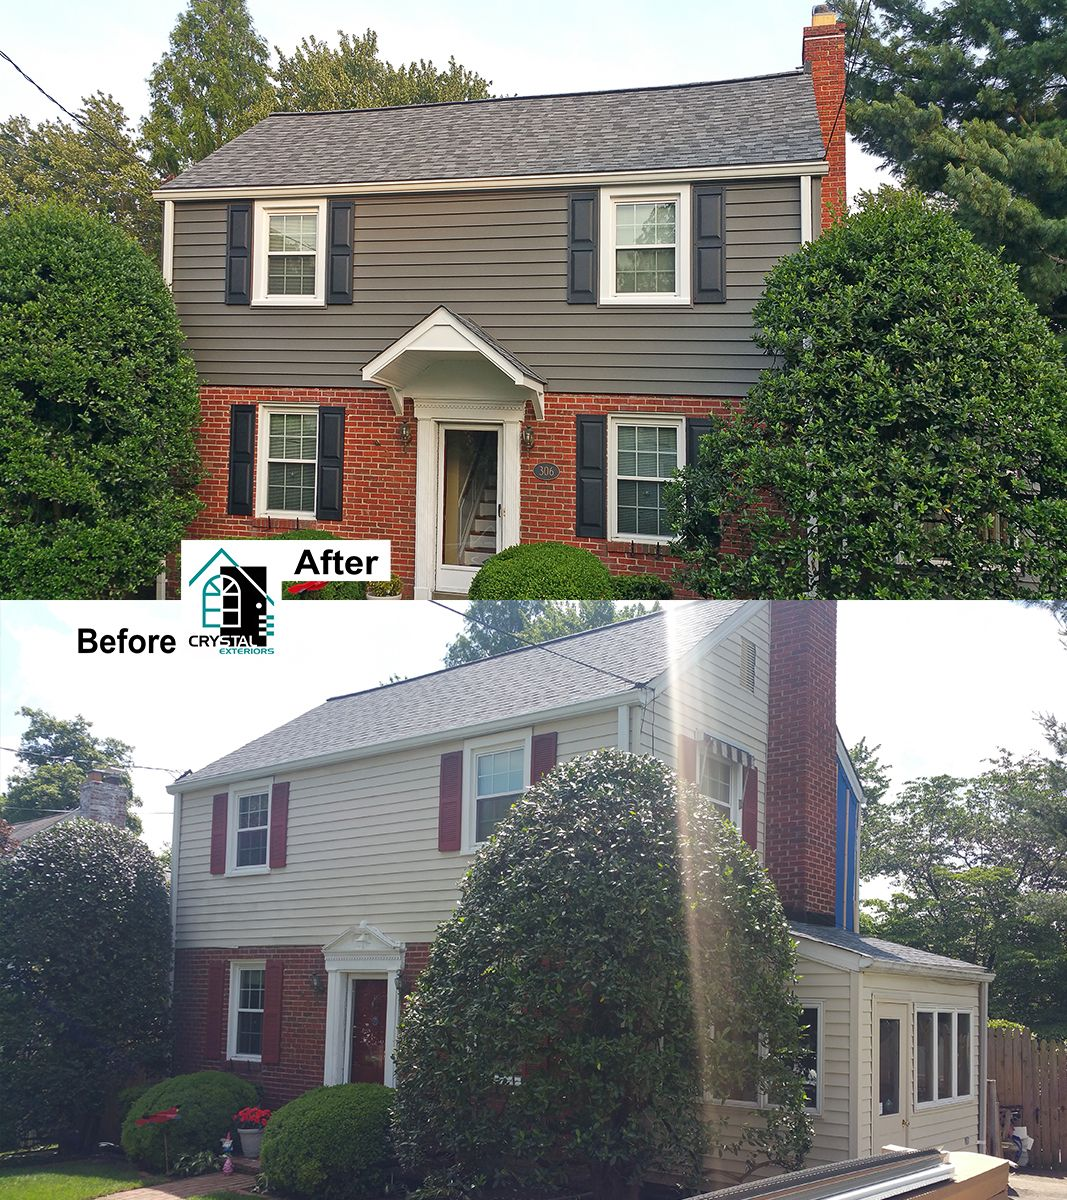 Siding Gallery Siding Replacement Works Crystal Exteriors Insulated Vinyl Siding Siding Replacing Siding